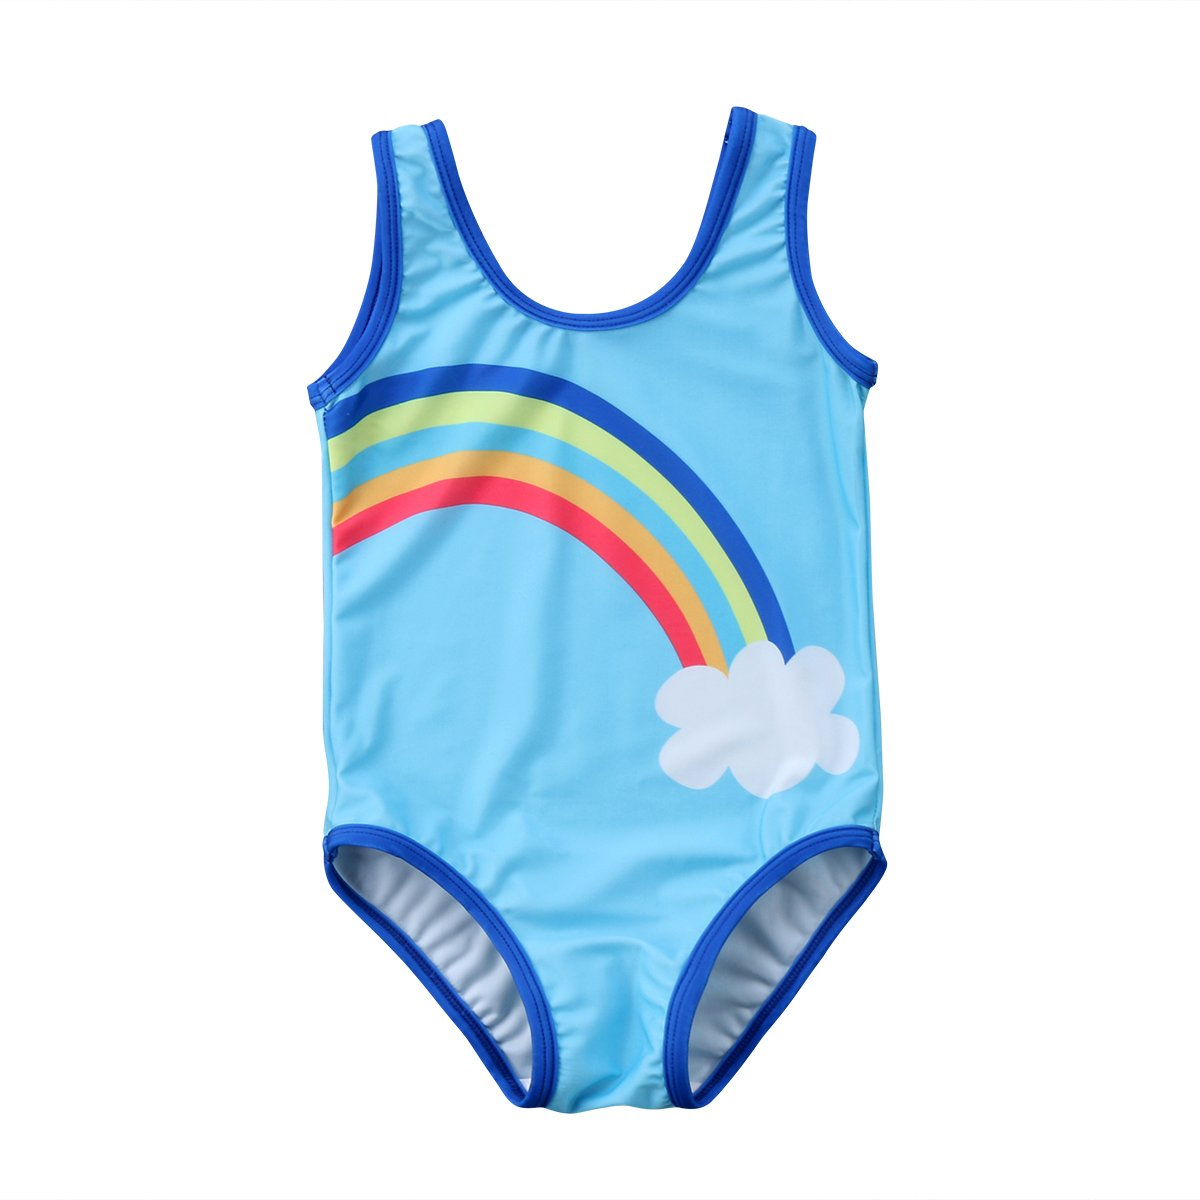 e4fa211c5ff30 Top8: Toddler Baby Girls Rainbow Cloud Swimsuit Bathing Suit One Piece